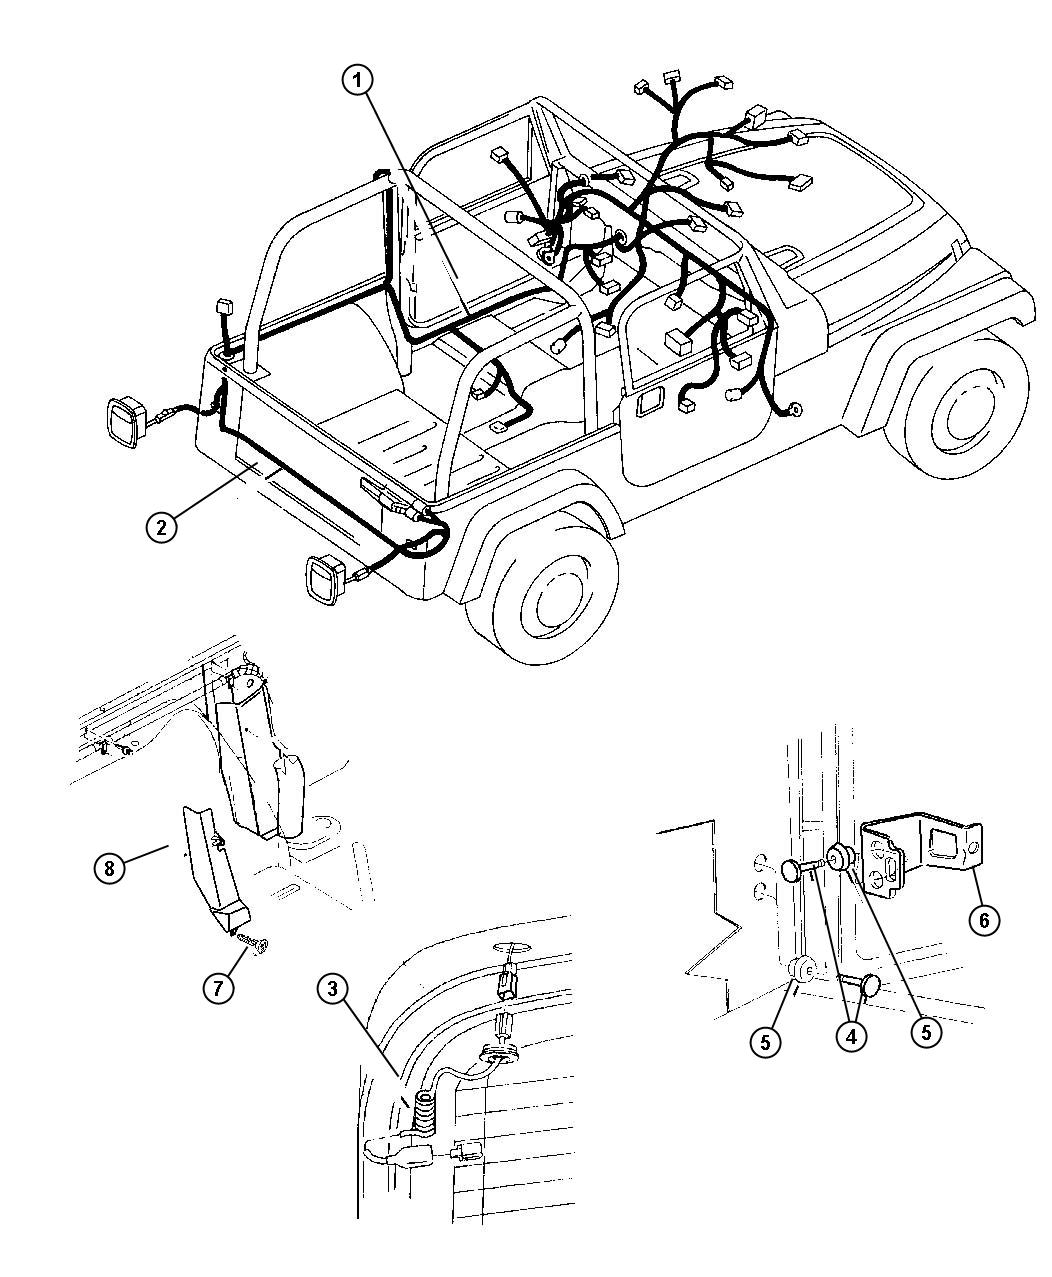 cj5 steering column diagram westinghouse electric oven wiring 72 jeep get free image about